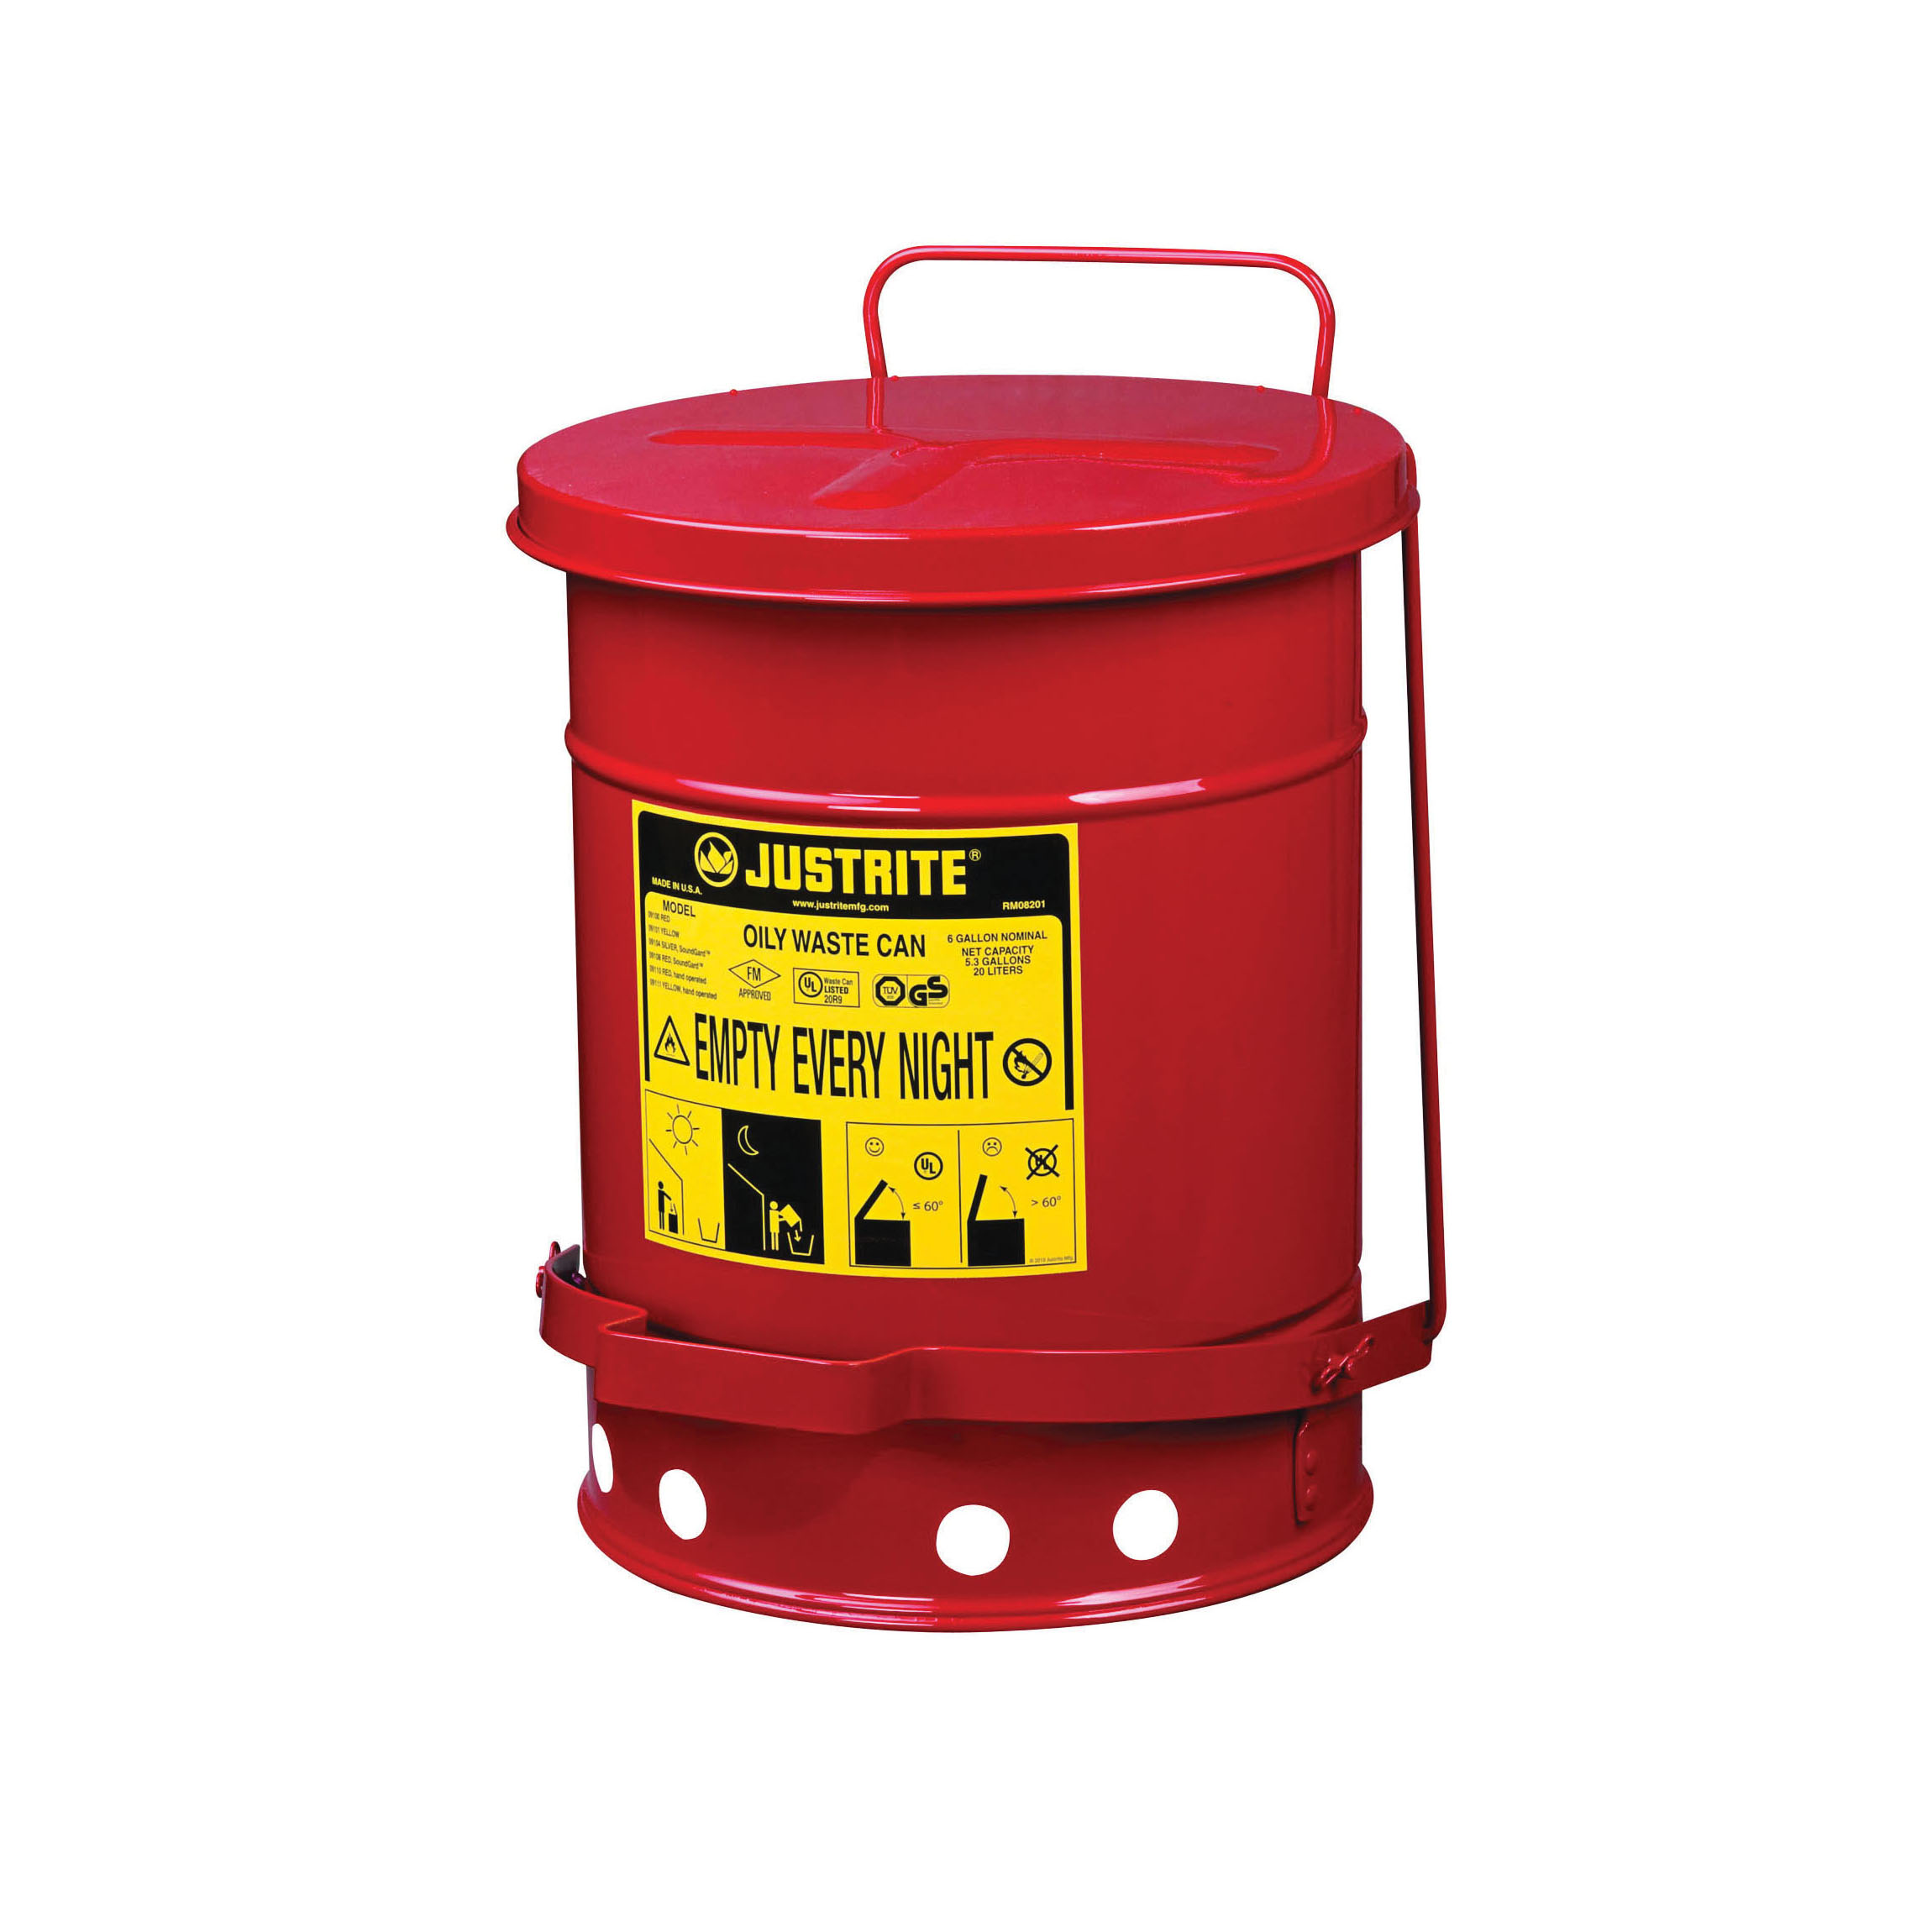 Justrite® 09100 Foot Operated Oily Waste Can With Self-Closing Cover, 6 gal Capacity, 11-7/8 in Dia x 15-7/8 in H, Steel, Red